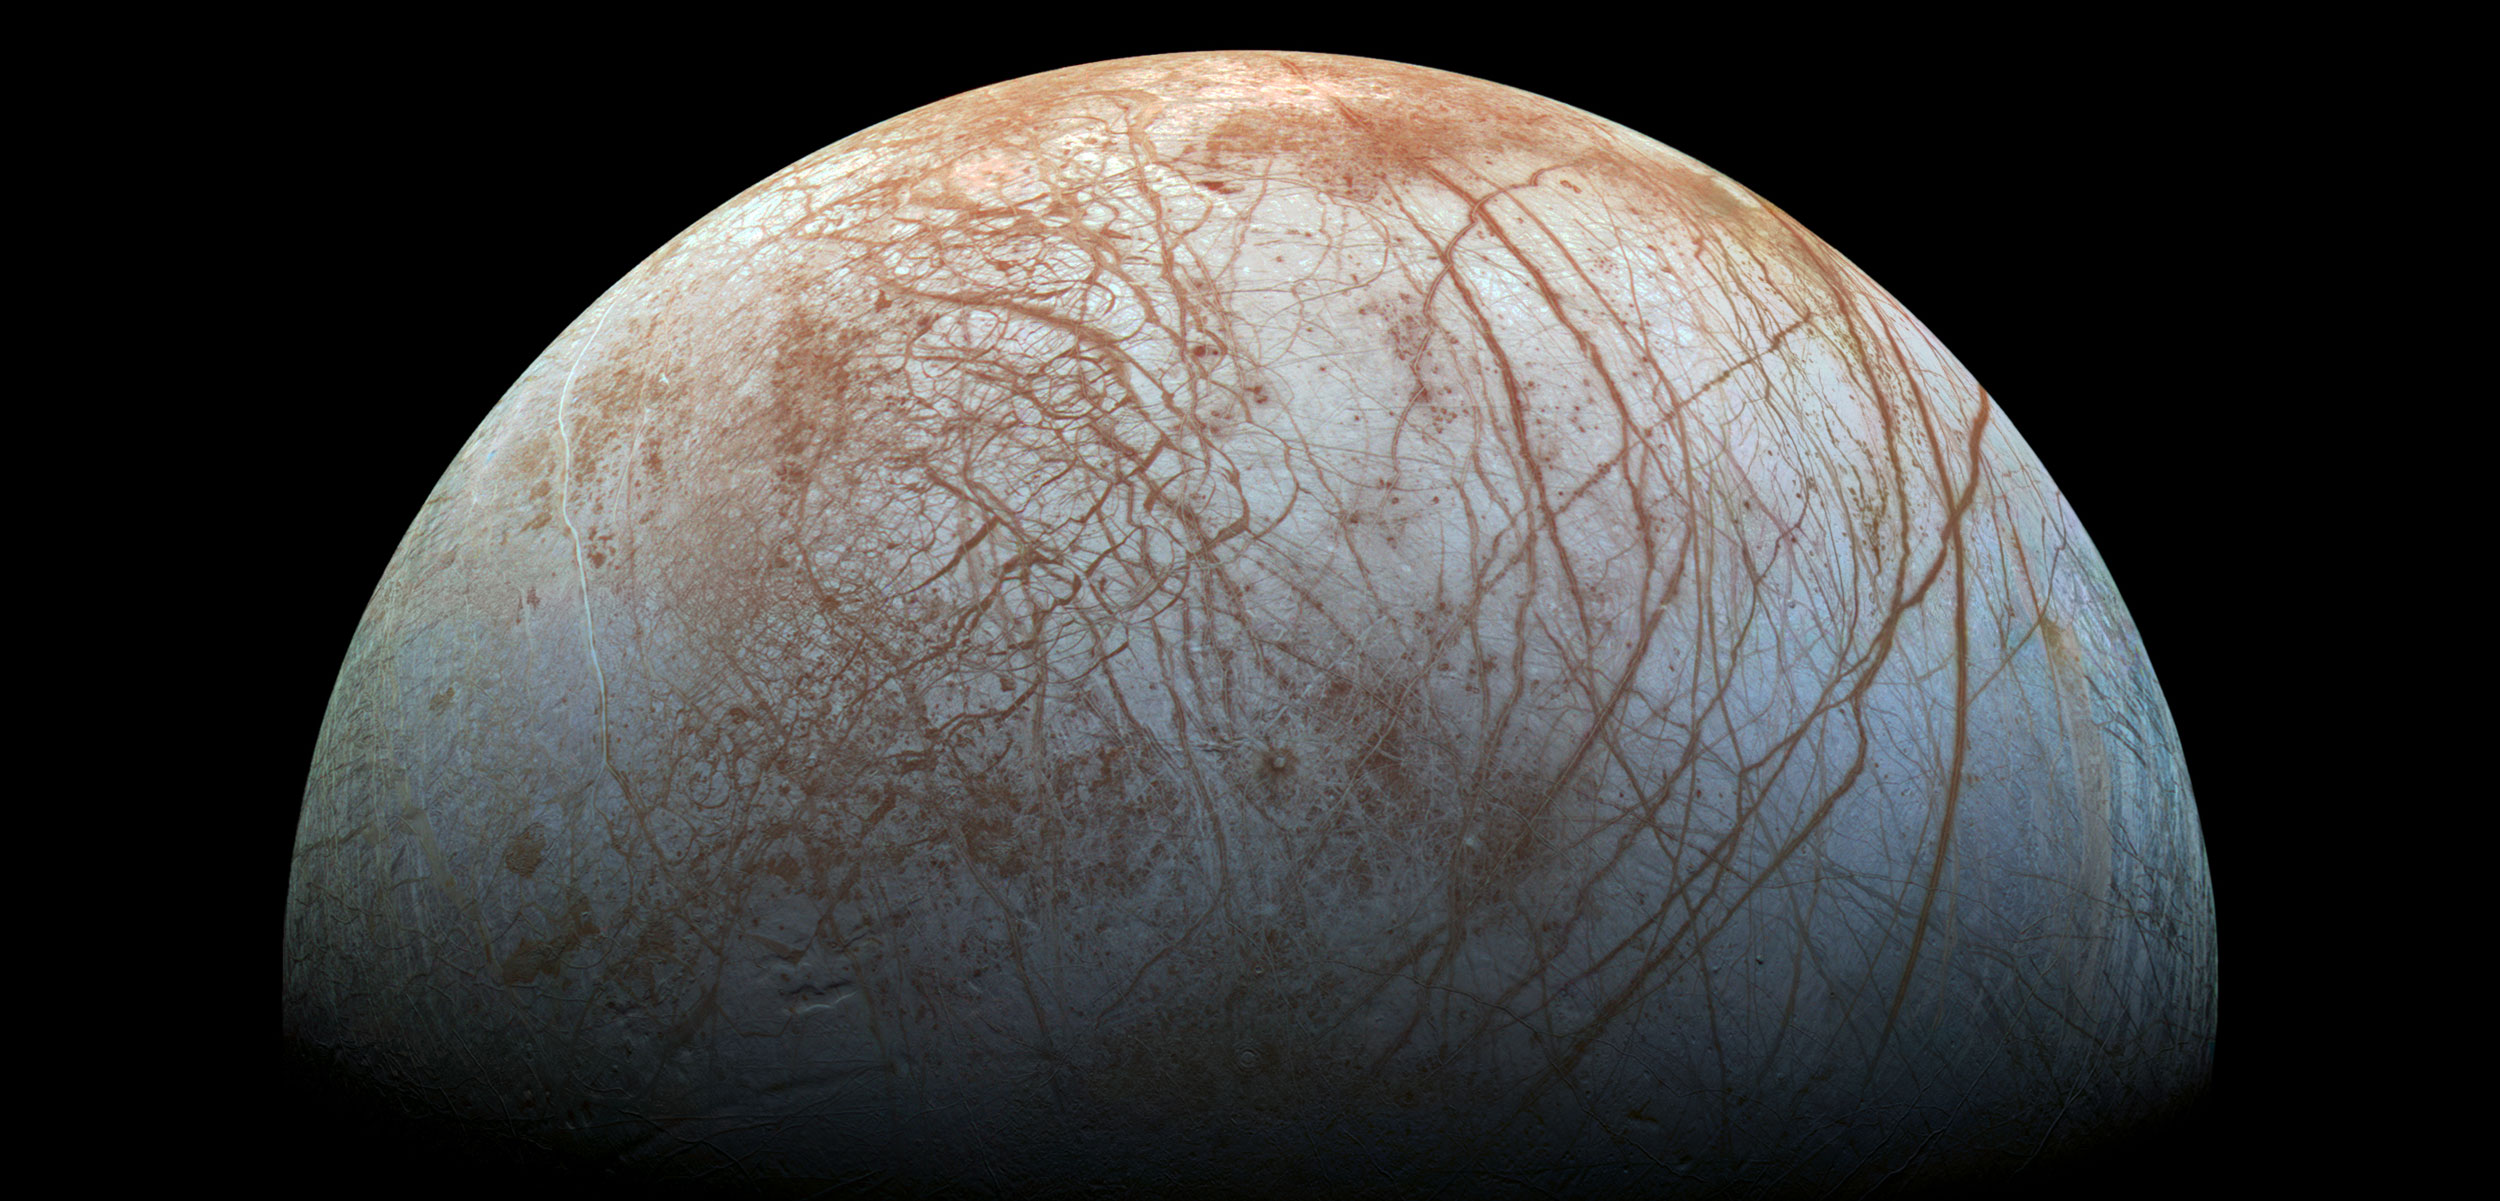 If life exists below Europa's icy exterior, it would have had to adapt to colder and deeper conditions than those found in Earth's deep seas. Photo by NASA/JPL-Caltech/SETI Institute